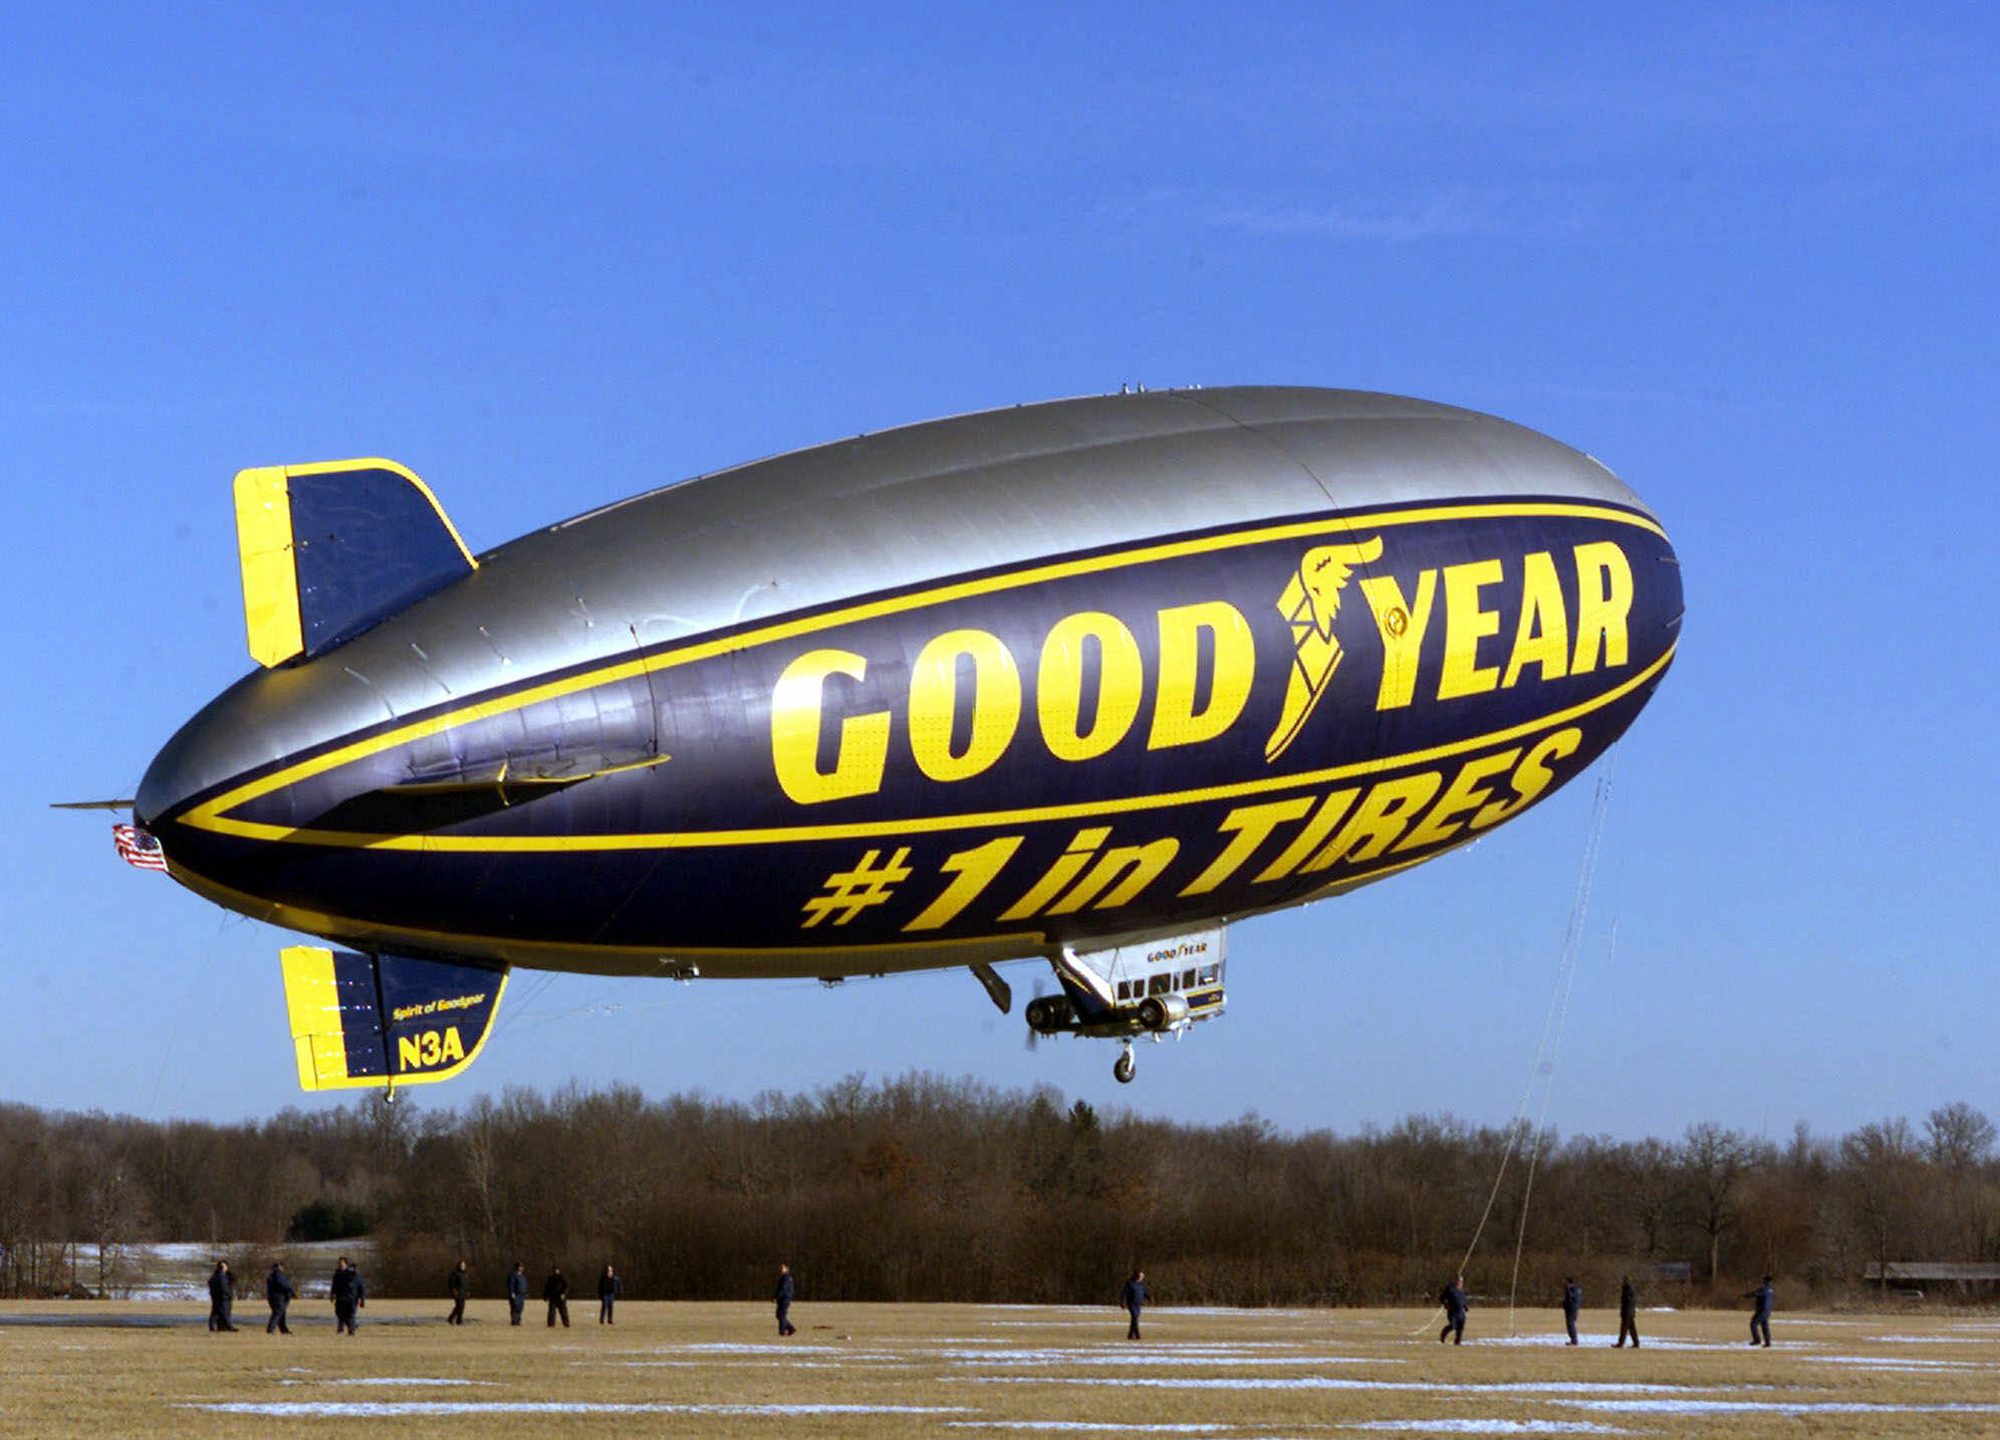 Akron Based Goodyear Blimp Will Retire To Florida The Blade